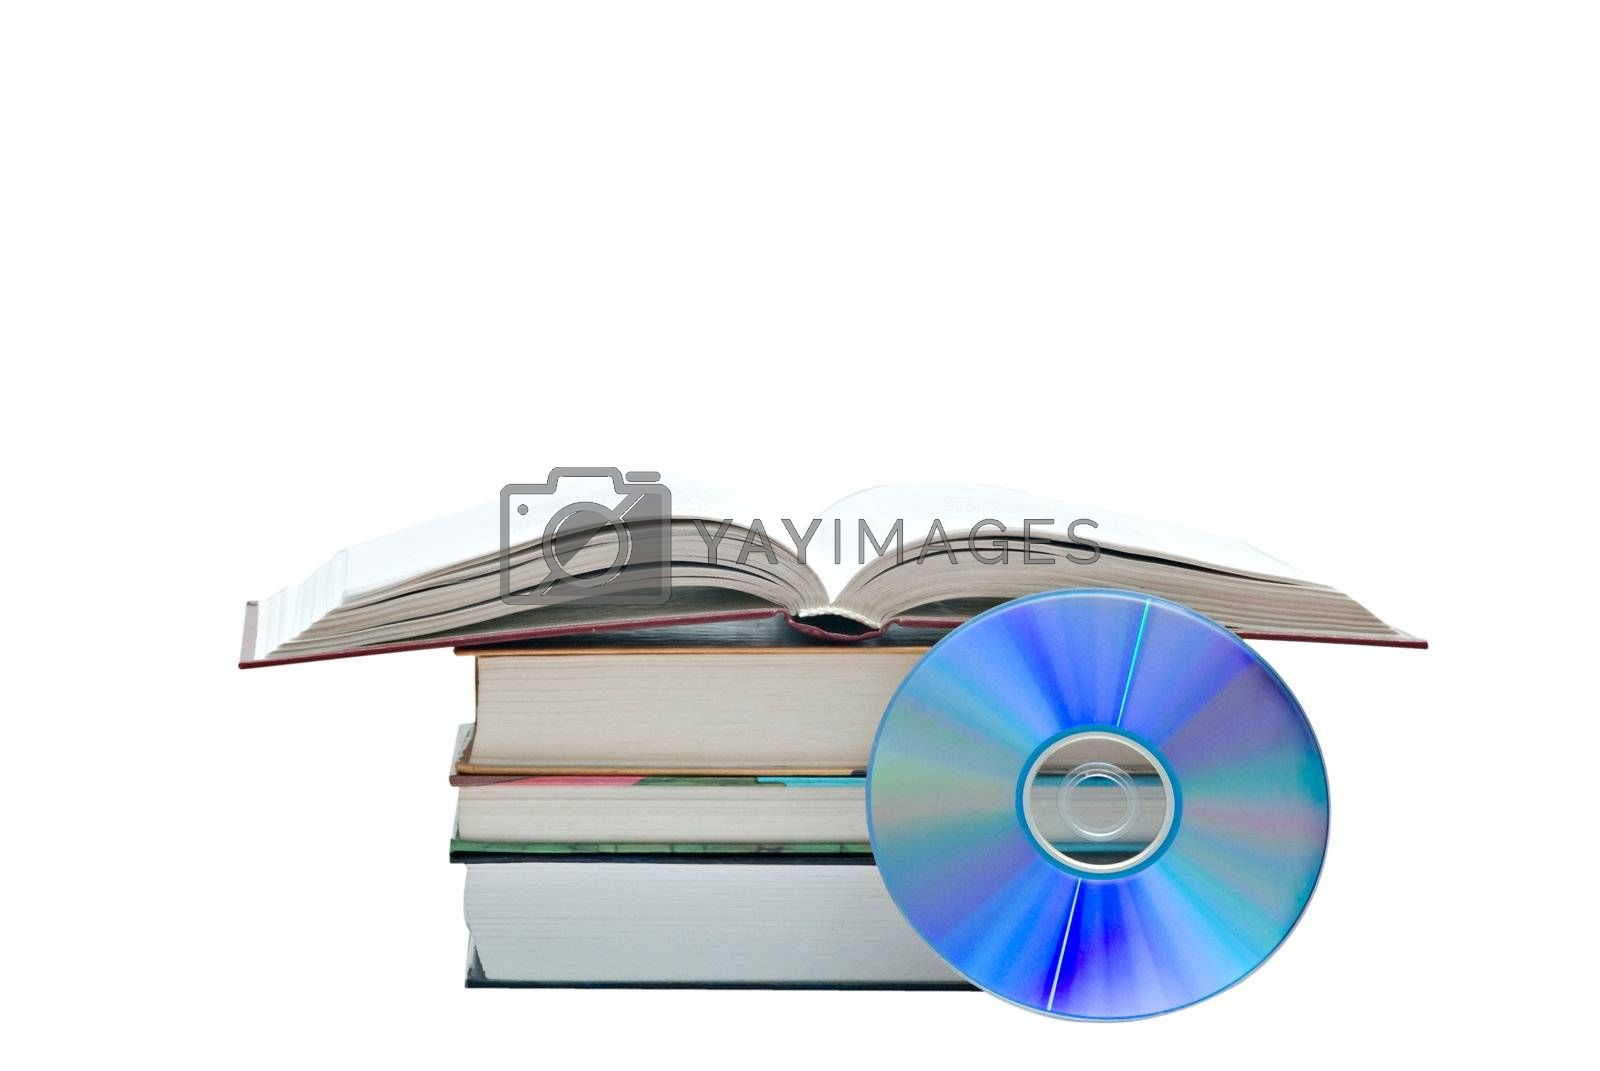 Pile of books, open book,  and DVD disk as symbols of old and new methods of information storage